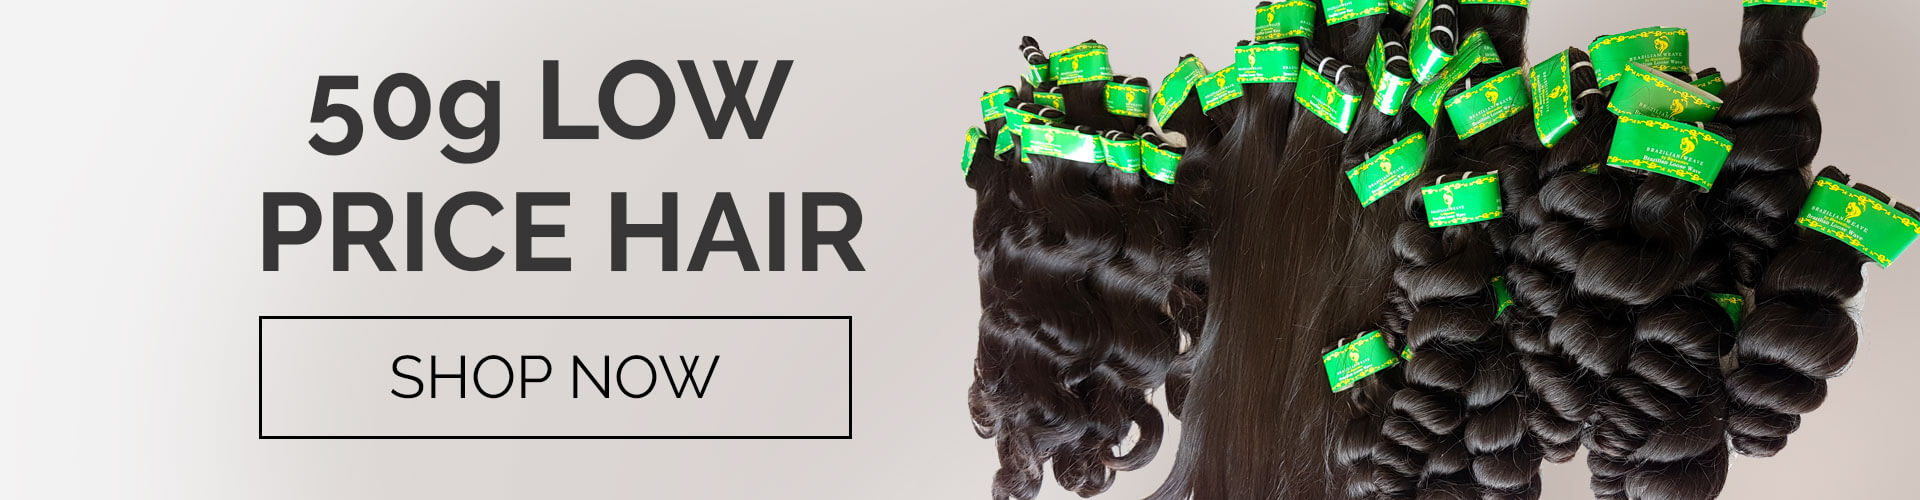 50g Low Price Hair